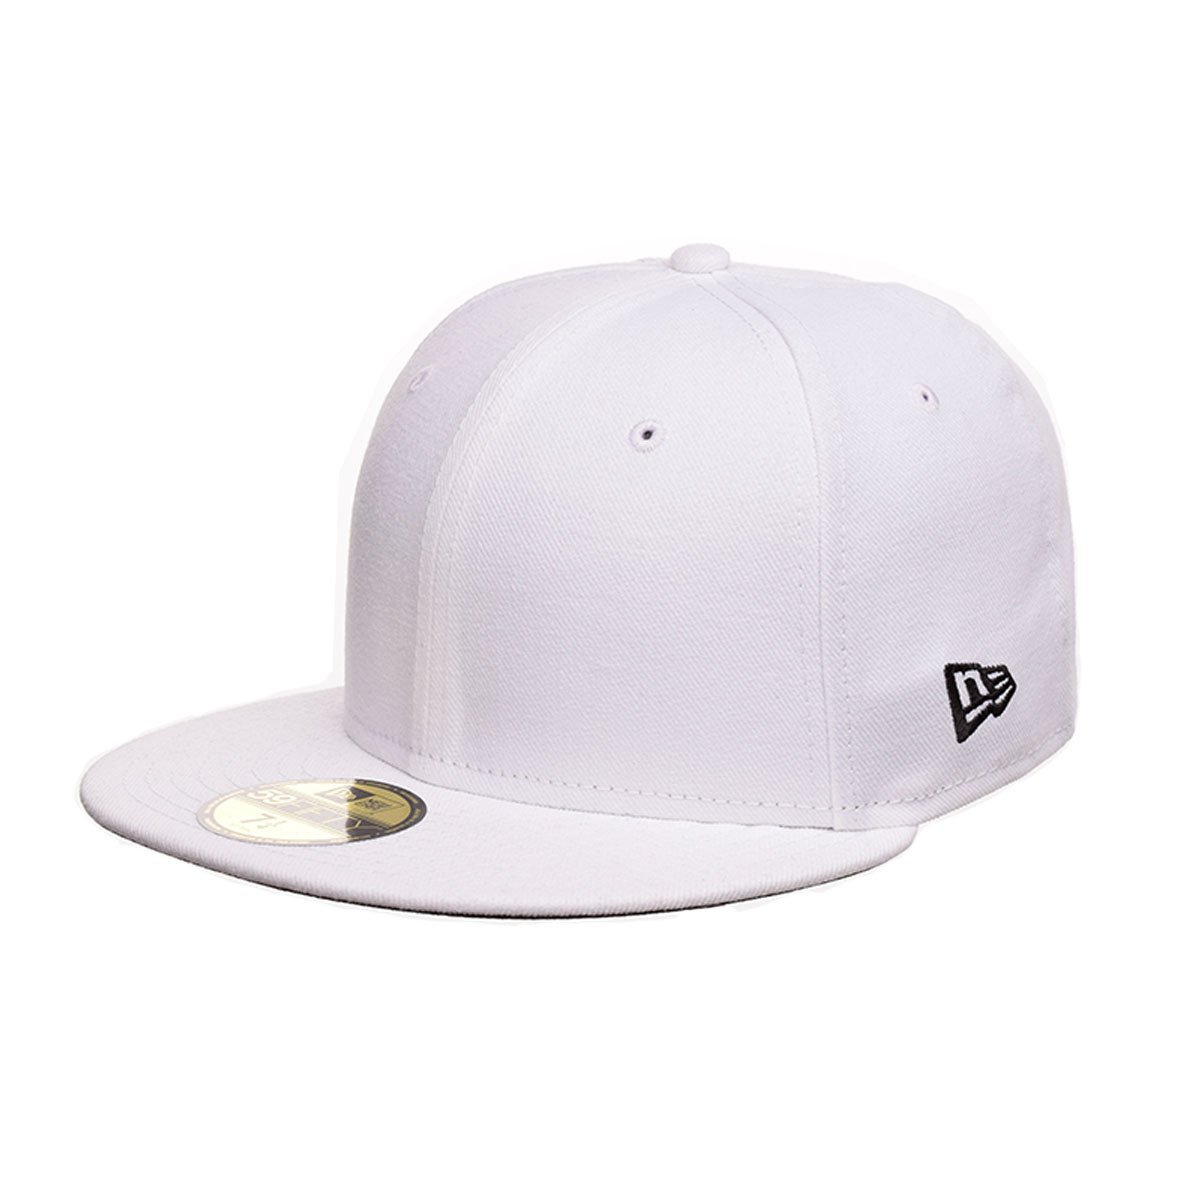 be0749bc9e92f3 Cheap Blank New Era 59fifty, find Blank New Era 59fifty deals on ...